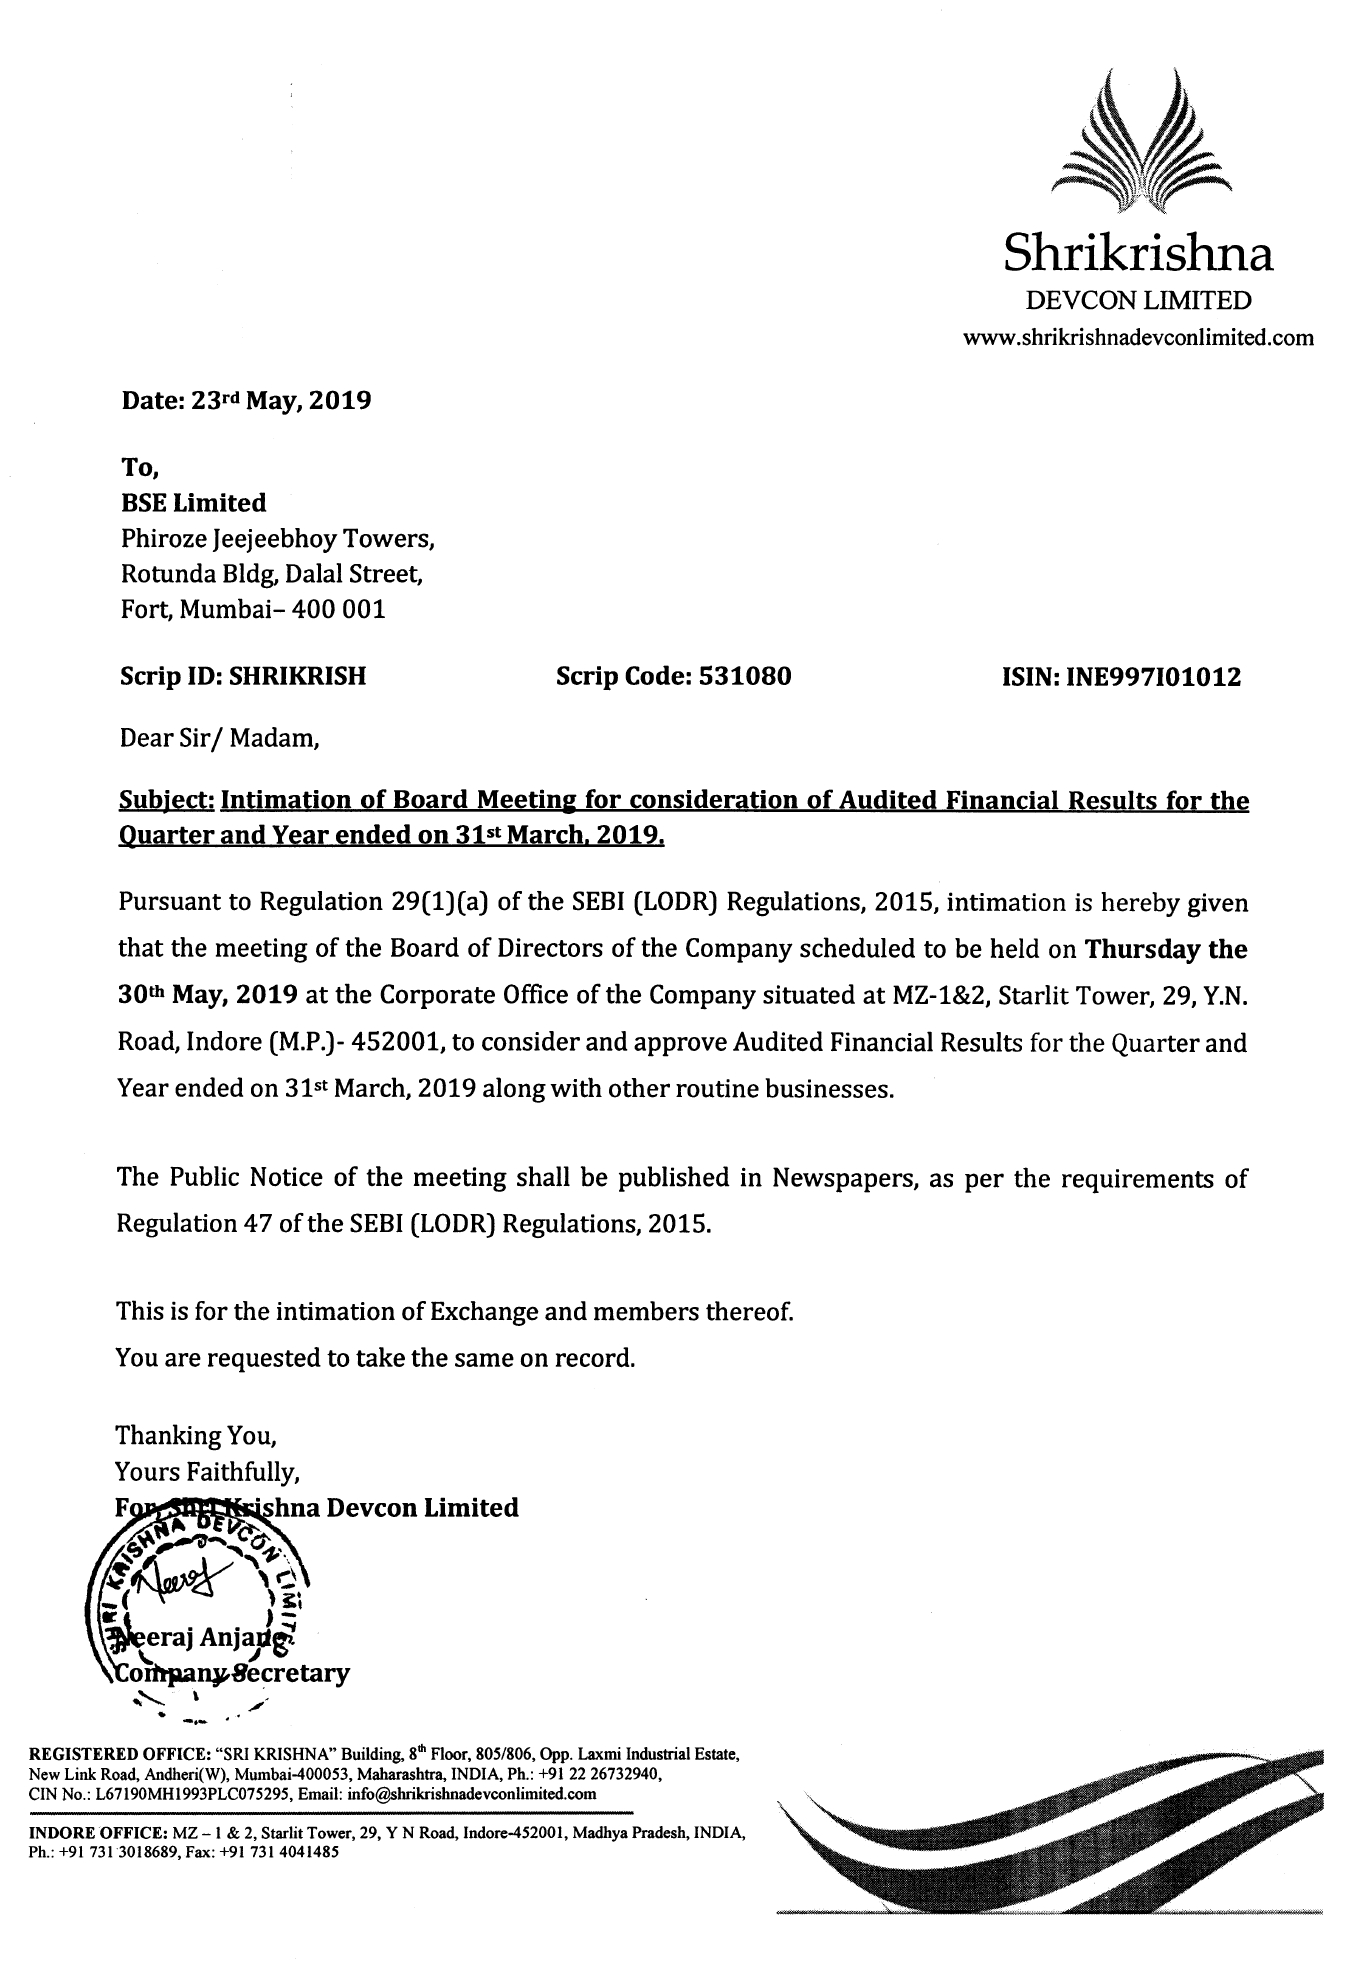 Notice of Board Meeting 30th May, 2019 - Shri Krishna Devcon